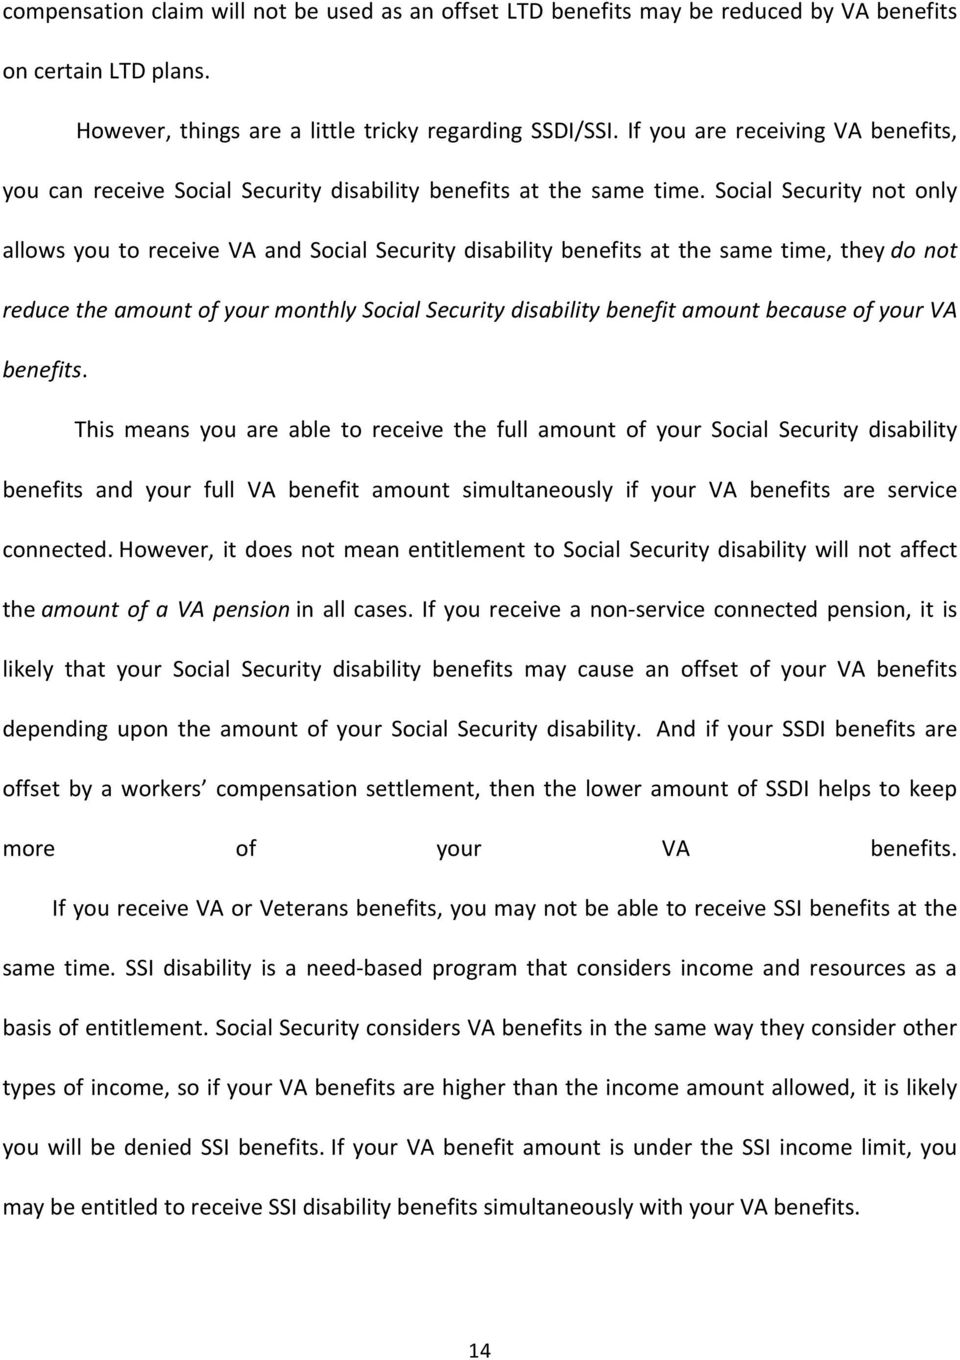 Social Security not only allows you to receive VA and Social Security disability benefits at the same time, they do not reduce the amount of your monthly Social Security disability benefit amount